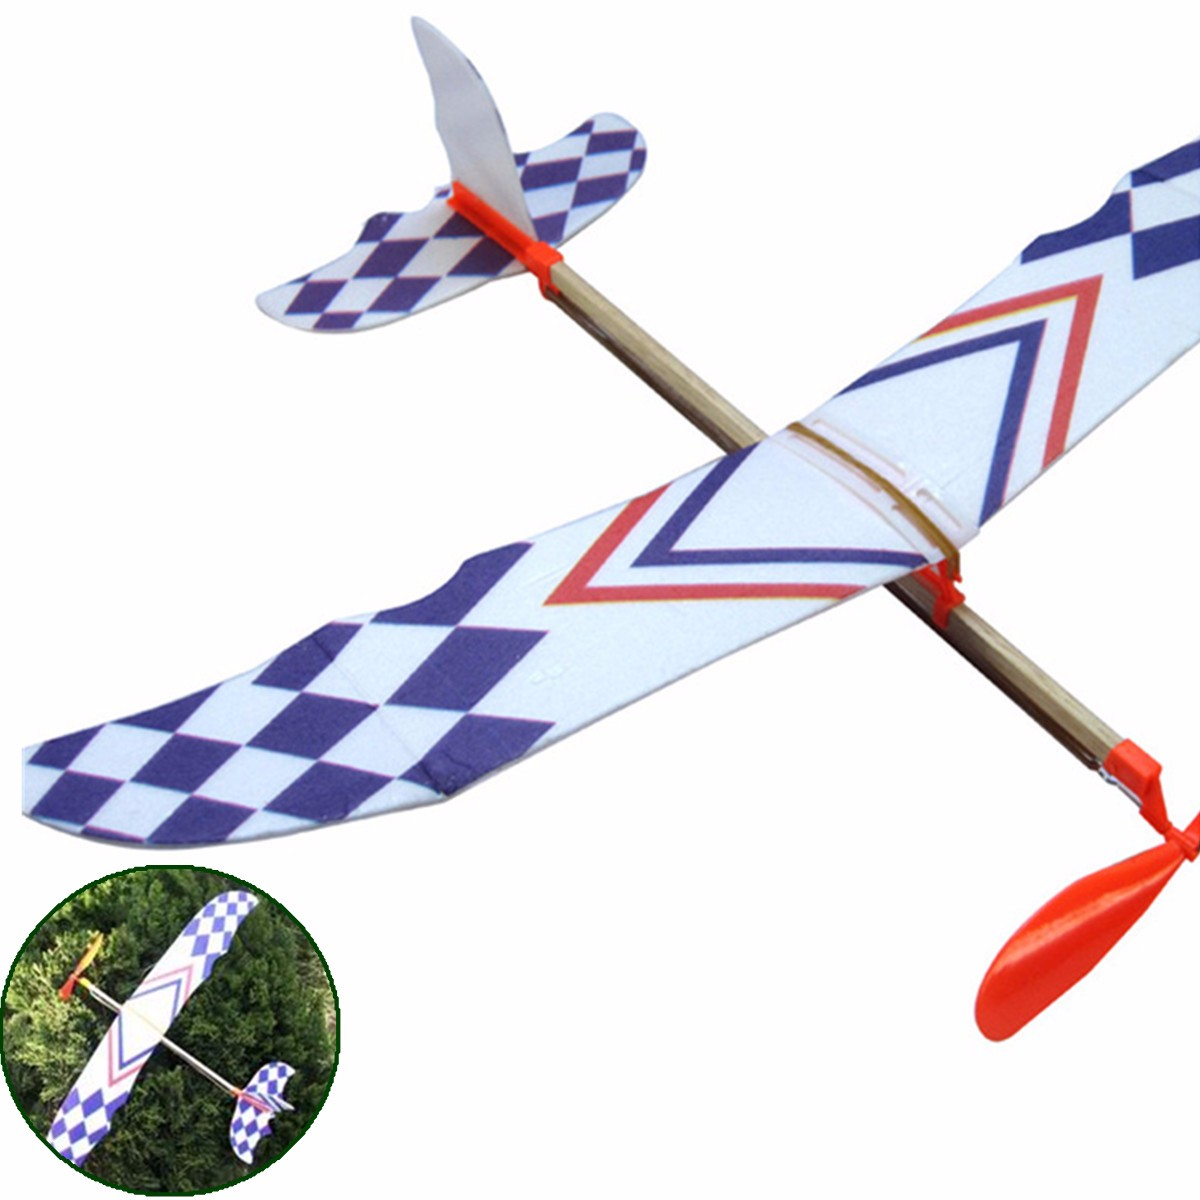 New DIY Handmade Elastic Rubber Powered Plastic Foam Plane Kit Aircraft Model Educational Toy Best Chirsmas Gift For Children(China (Mainland))